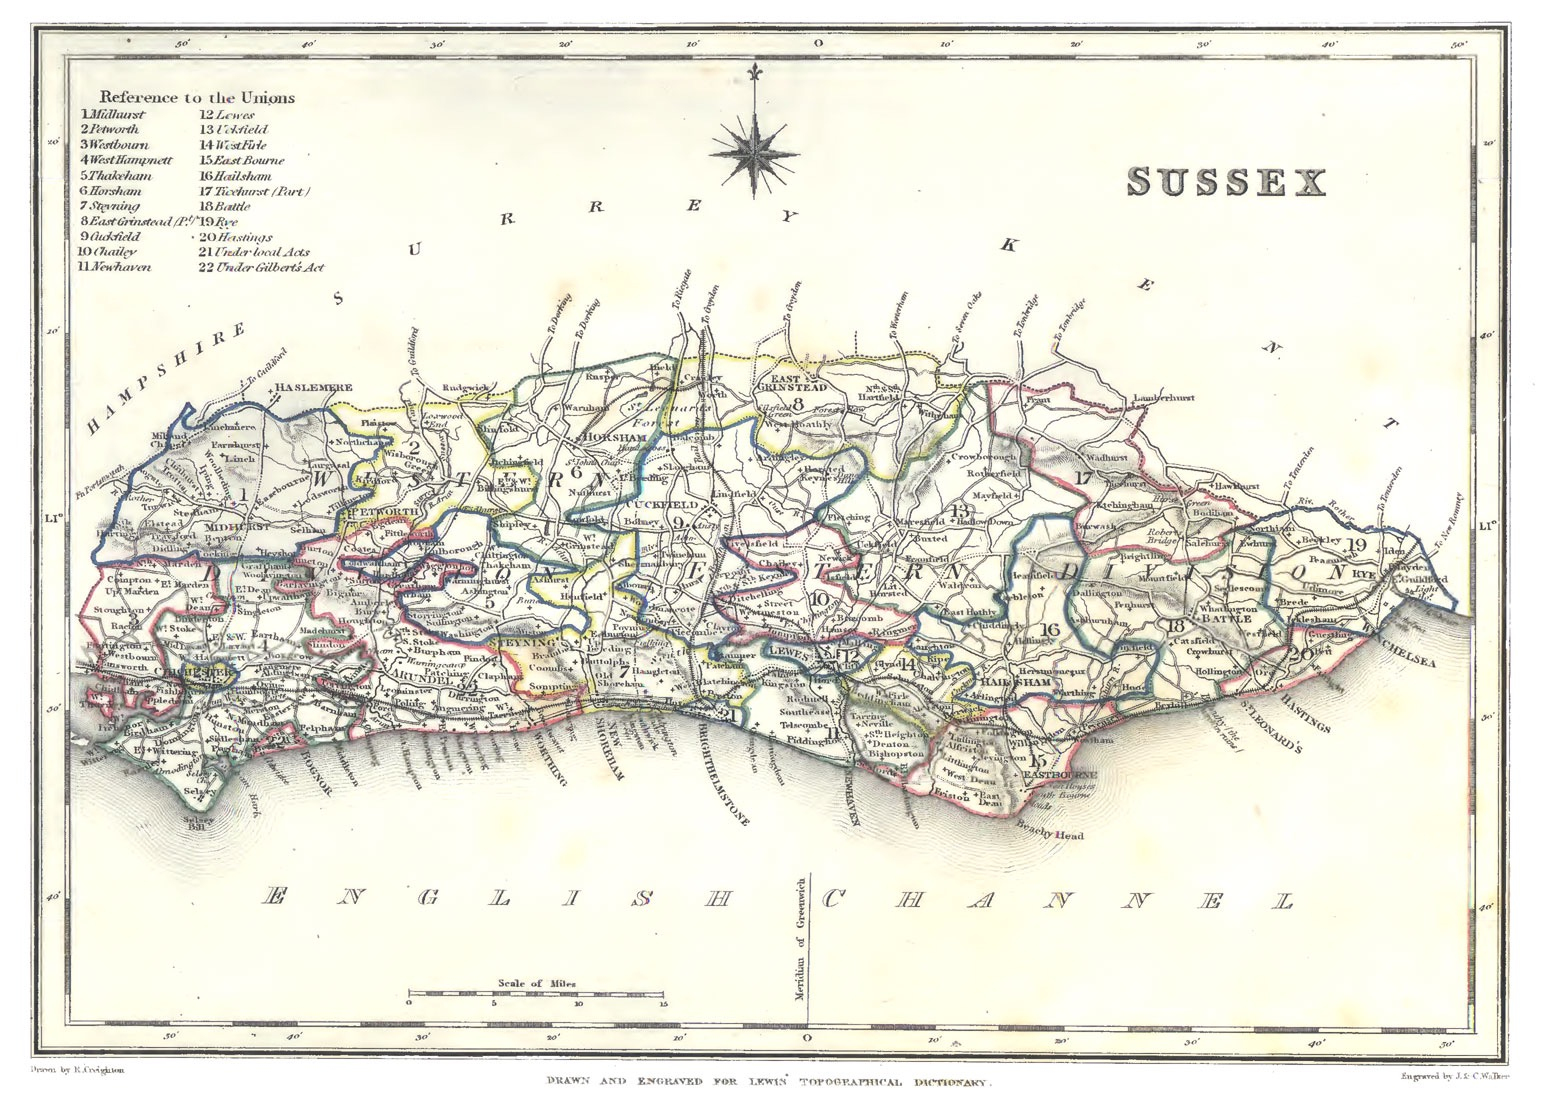 Sussex Genealogy Heraldry And Family History